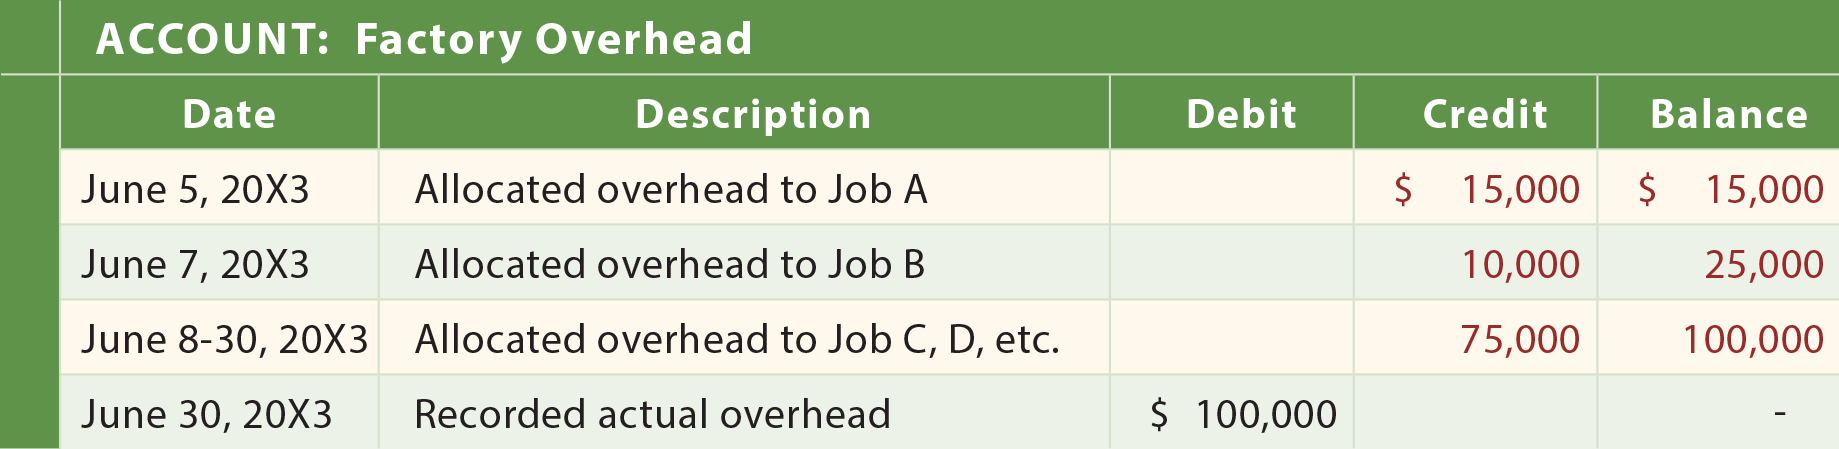 Actual and Applied Overhead - Factory Overhead General Ledger Entries